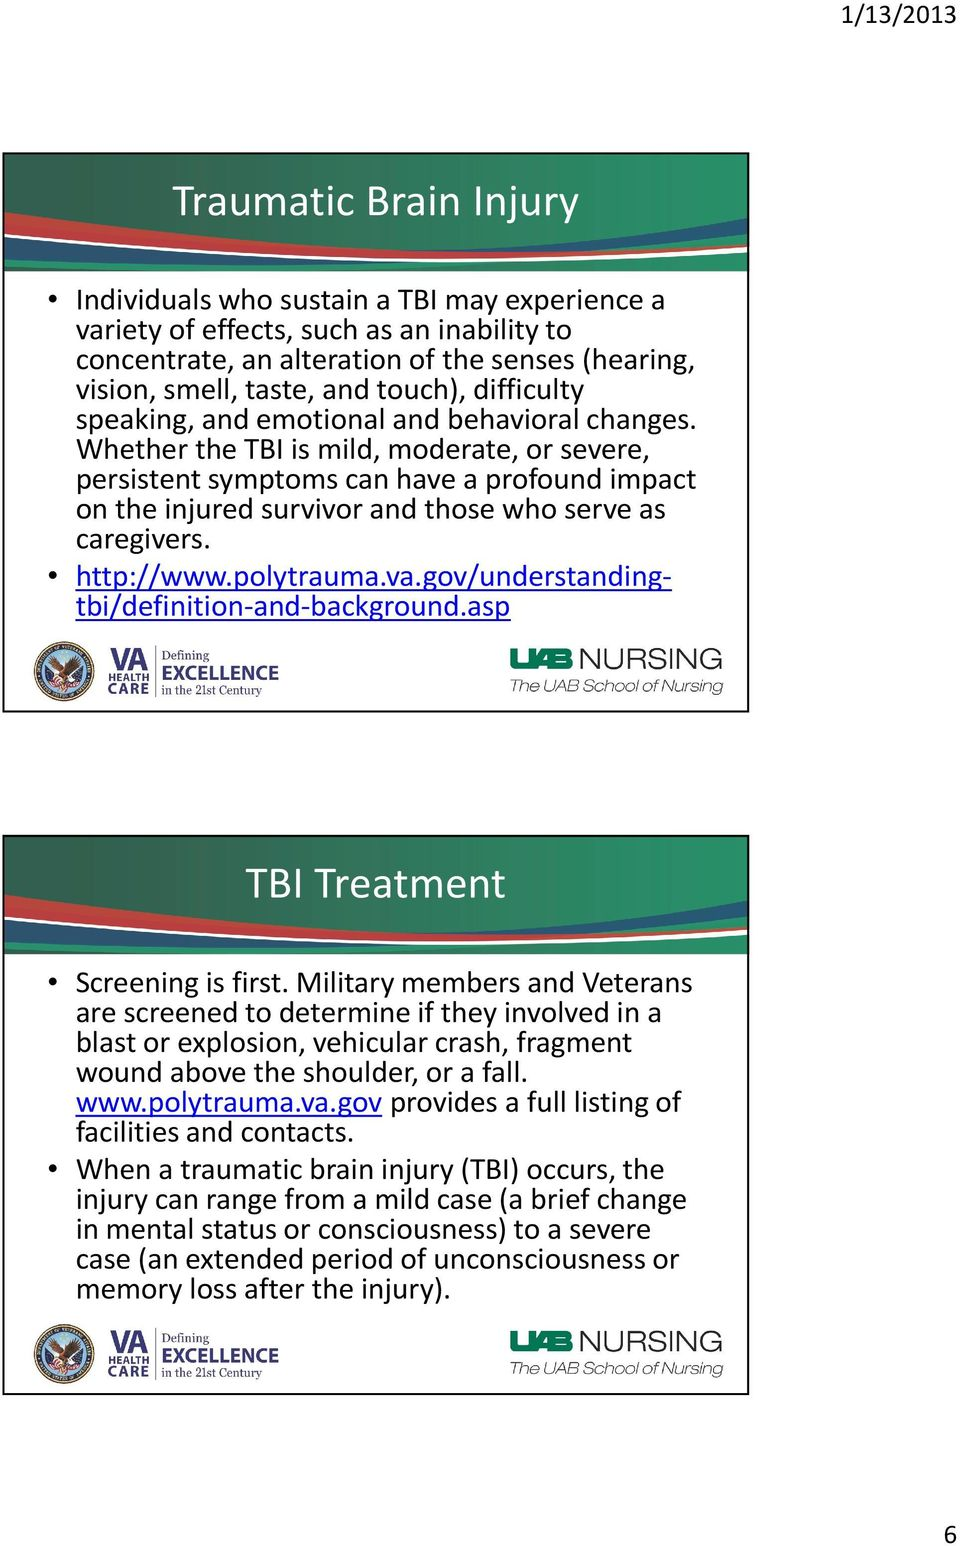 Whether the TBI is mild, moderate, or severe, persistent symptoms can have a profound impact on the injured survivor and those who serve as caregivers. http://www.polytrauma.va.